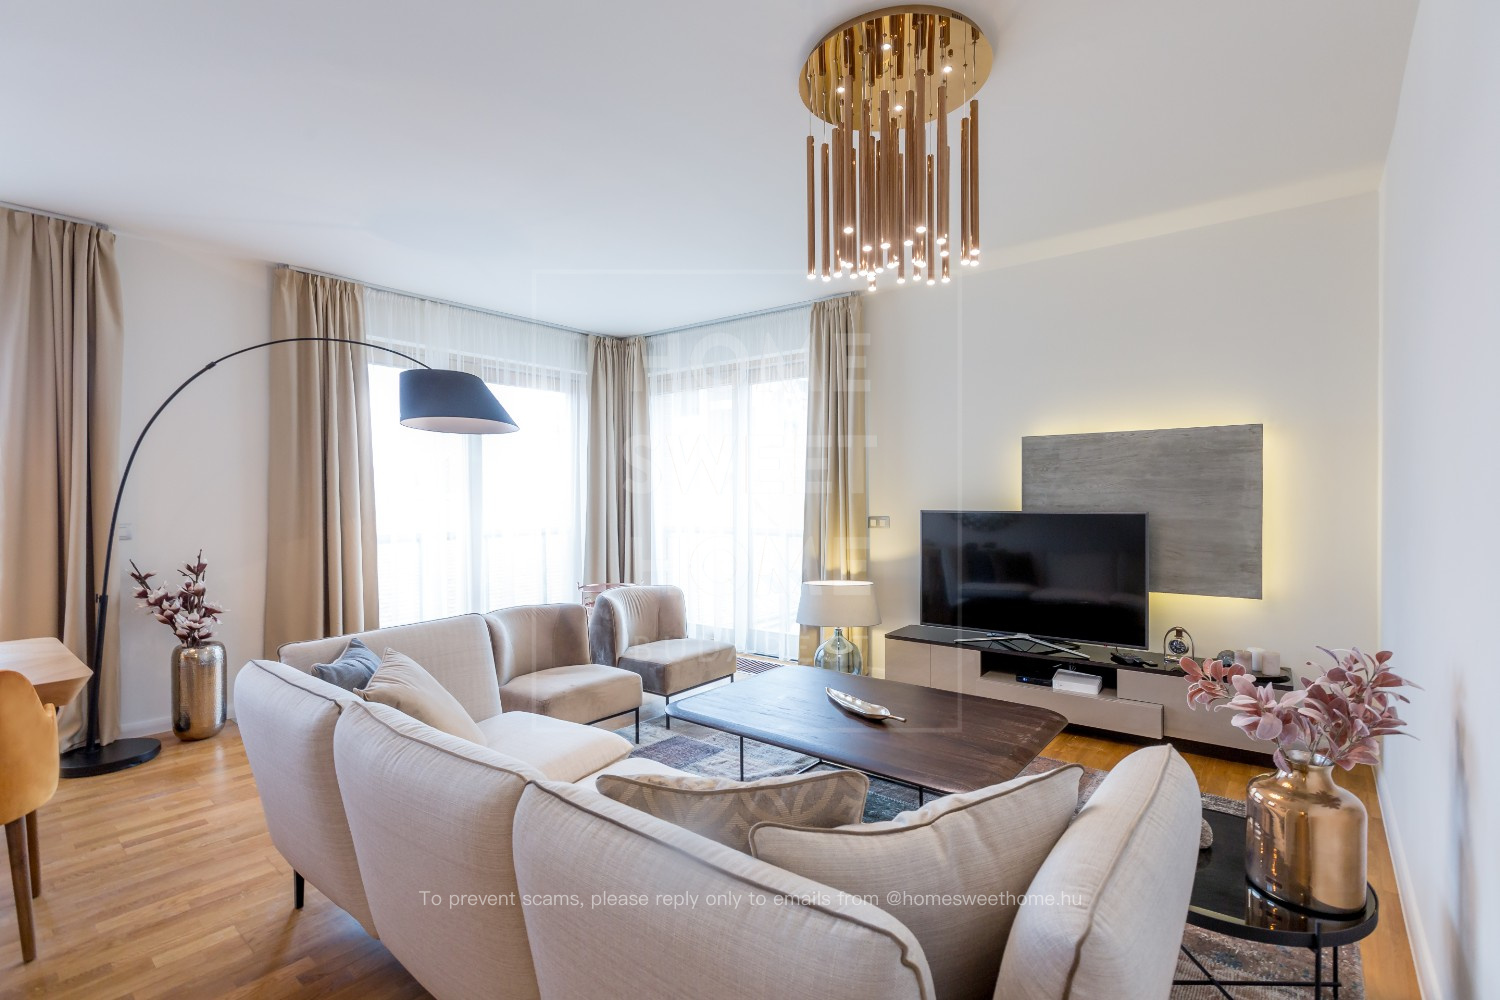 luxury-3-bedroom-apartment-for-rent-on-discount-price-Budapest_1.jpg